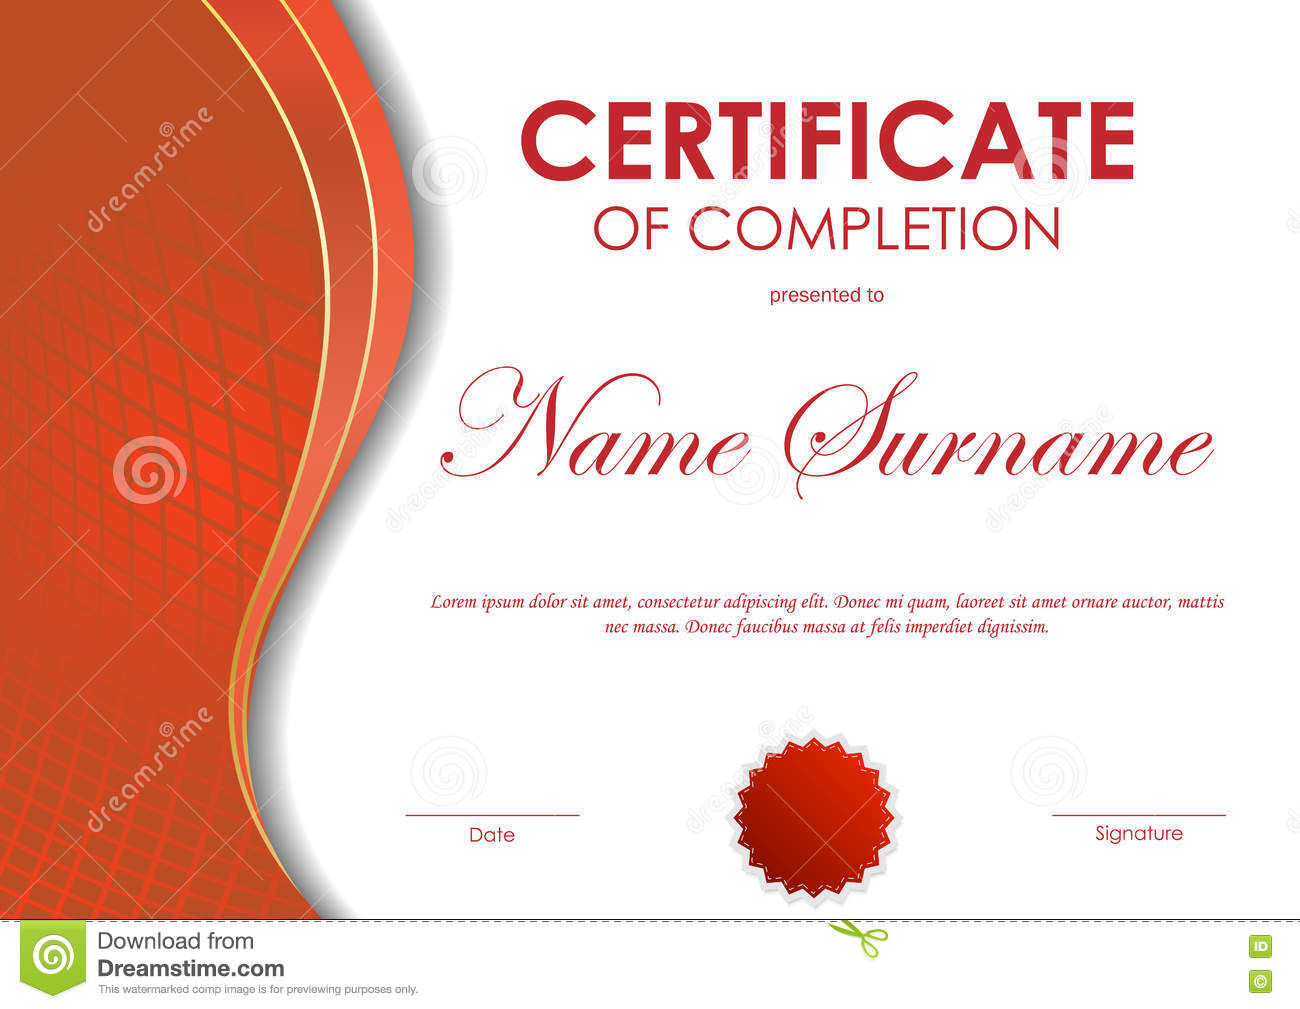 Certificate of completion template in vector with florist vector certificate of completion template in vector with florist vector illustration cartoondealer 65958274 yadclub Choice Image